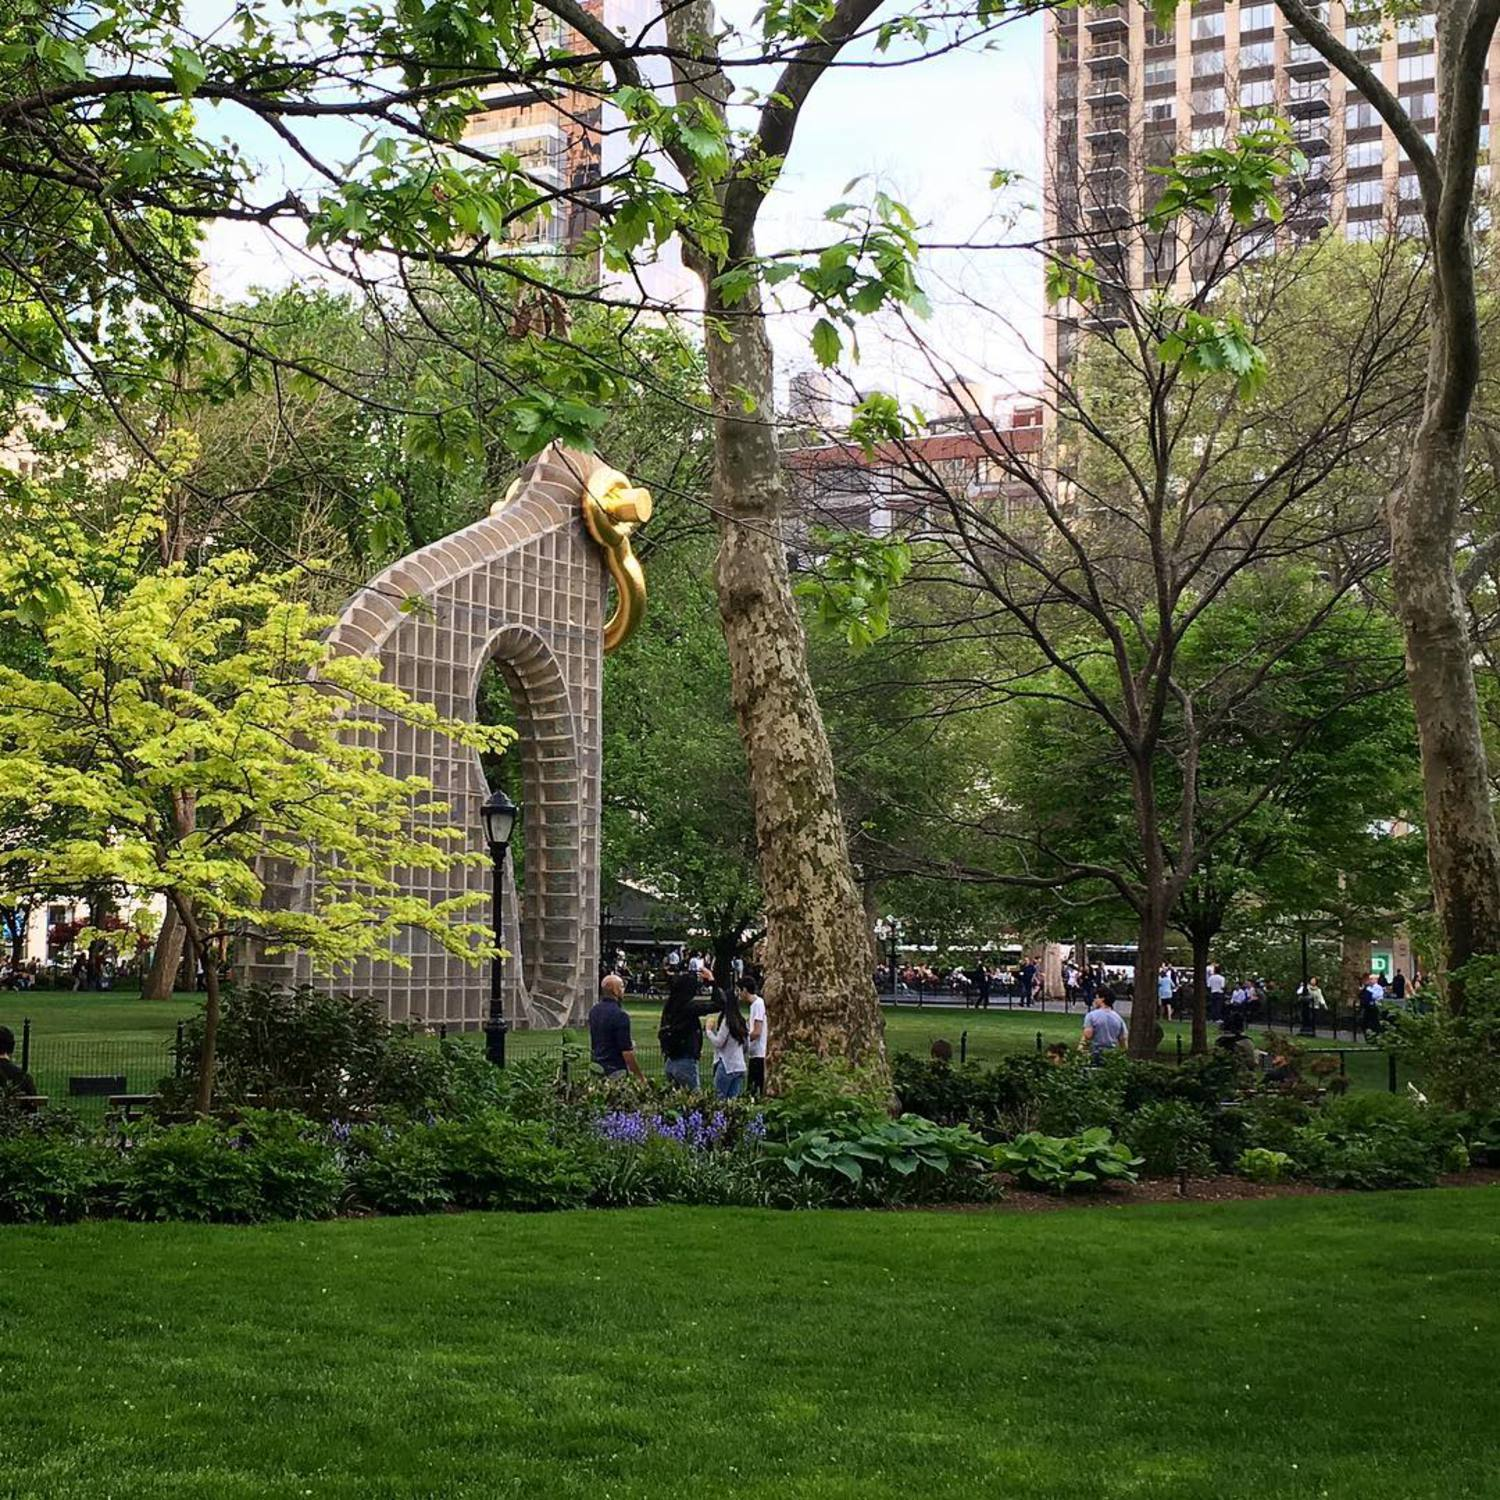 #MartinPuryear's #BigBling at @madsqparknyc is looking good! Opens to the public next week on the 16th. #MadSqArt (📷: @jonnymoon)